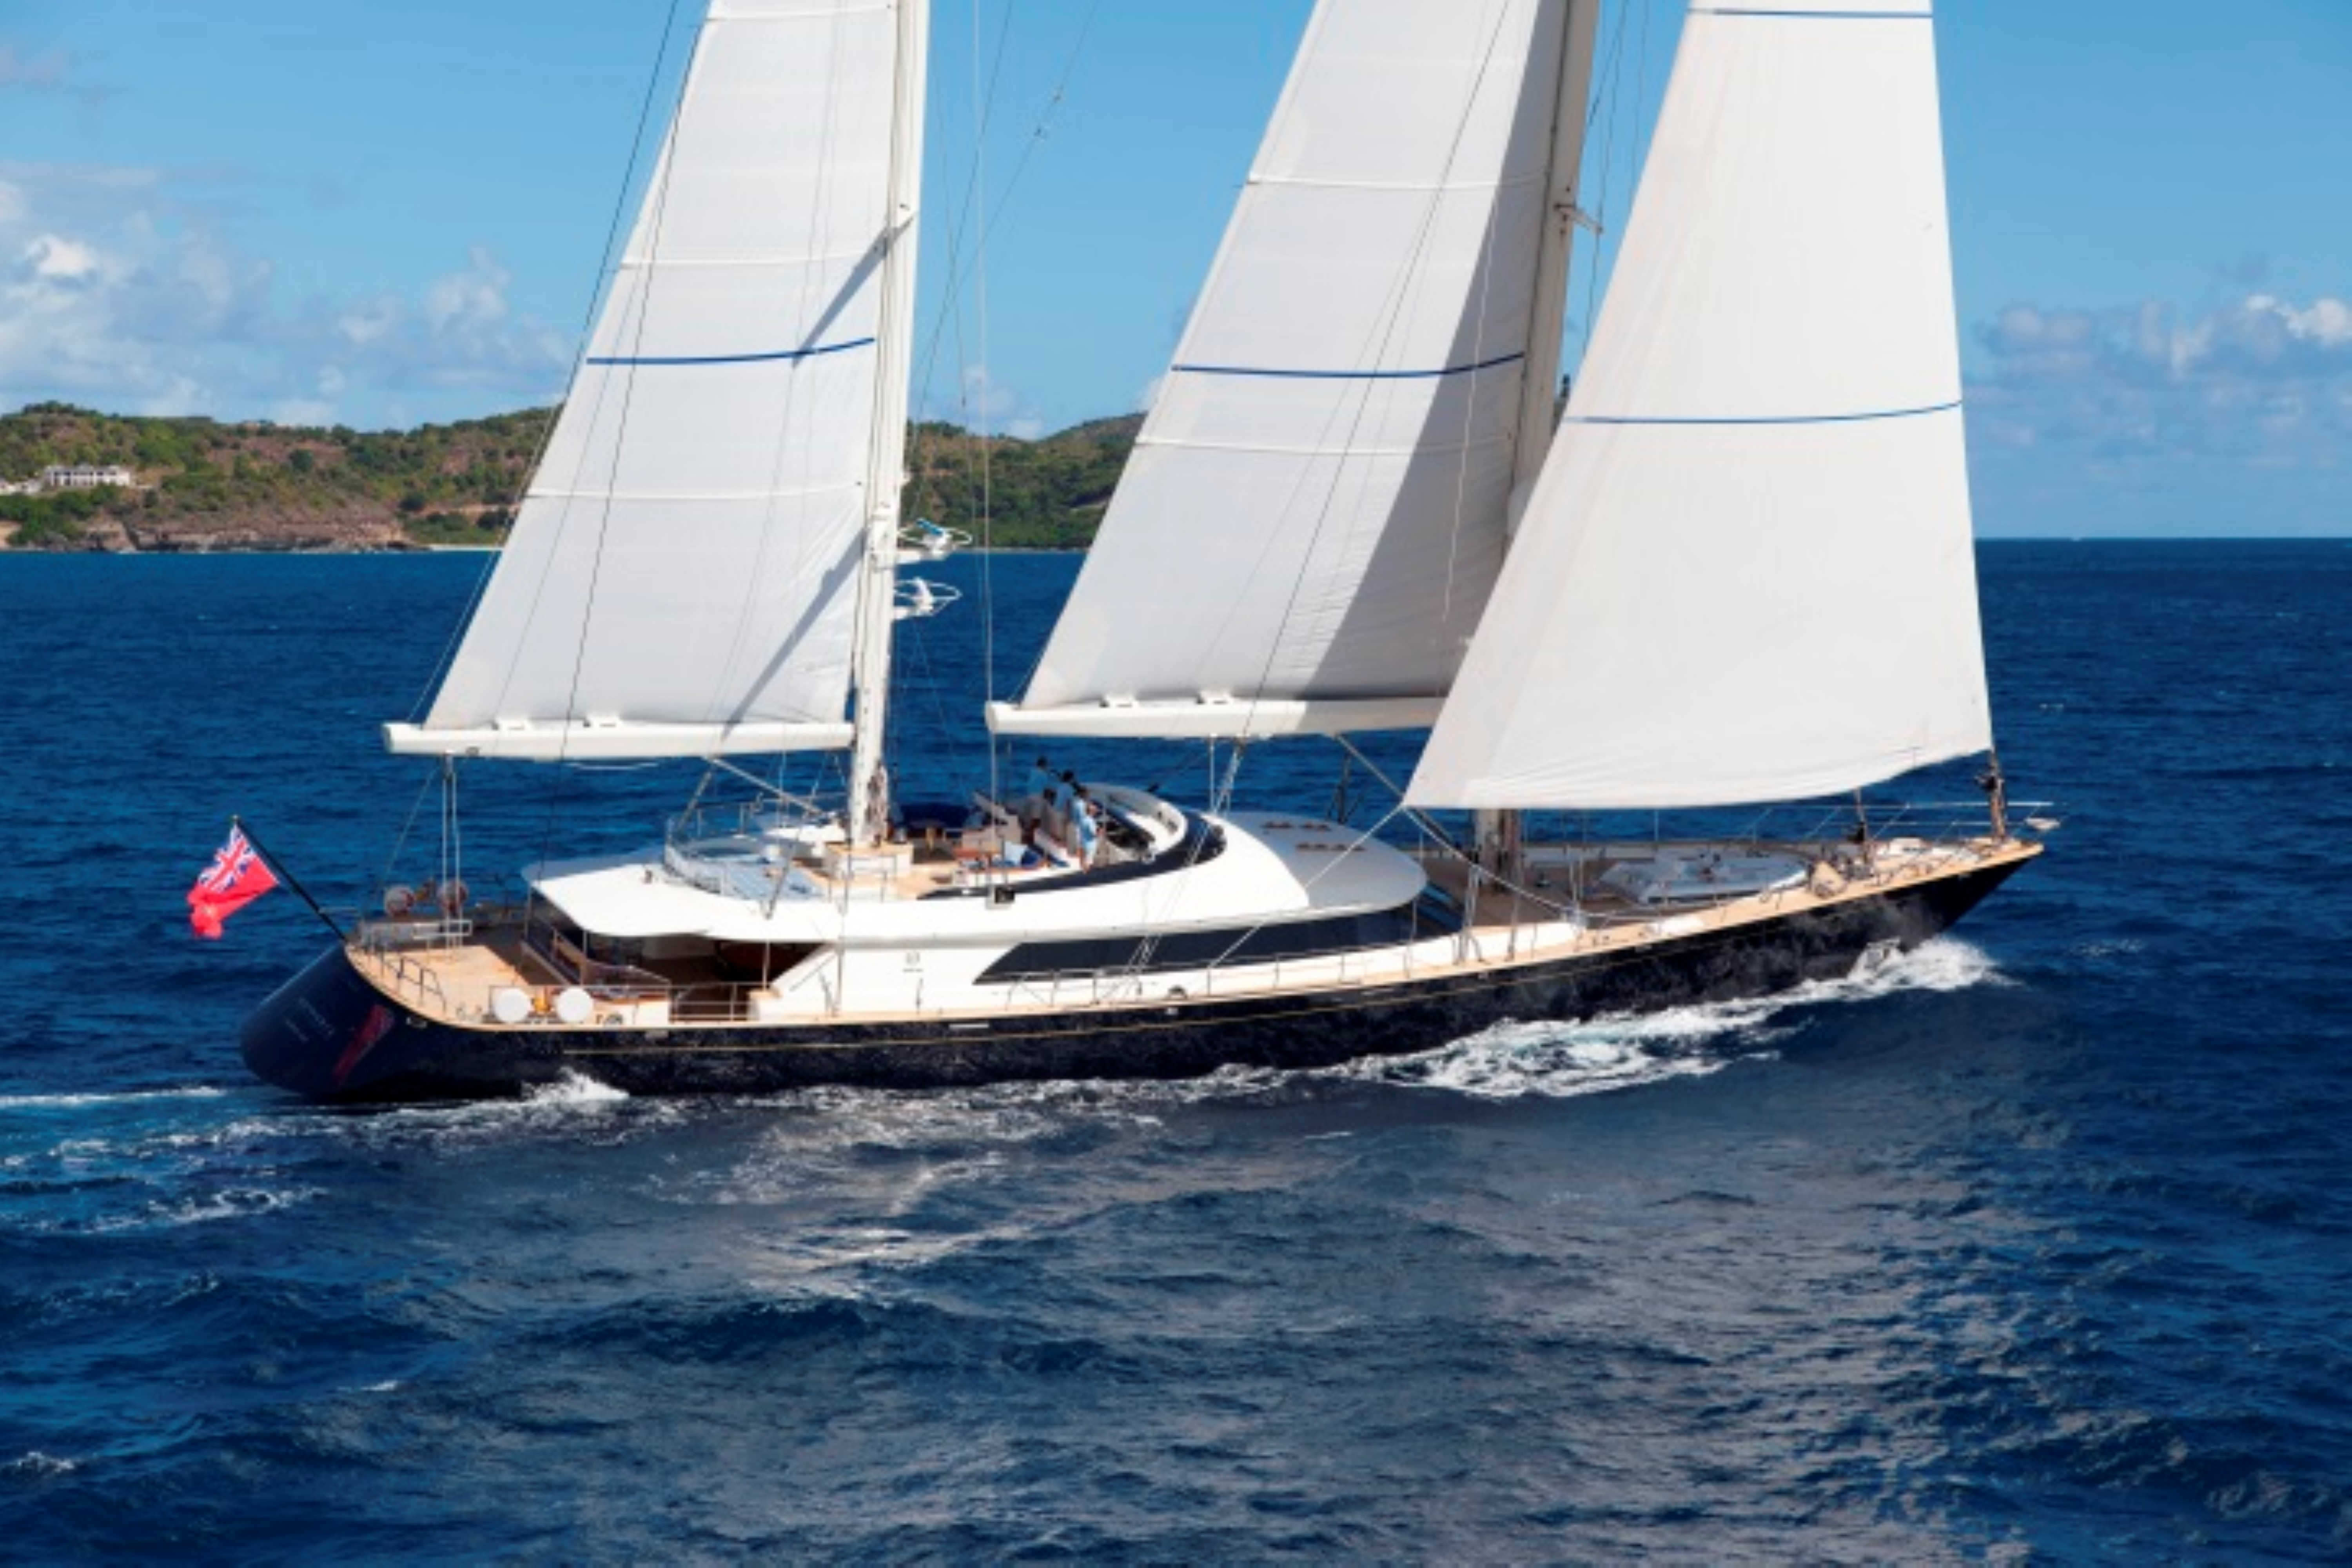 The 43m Yacht VICTORIA